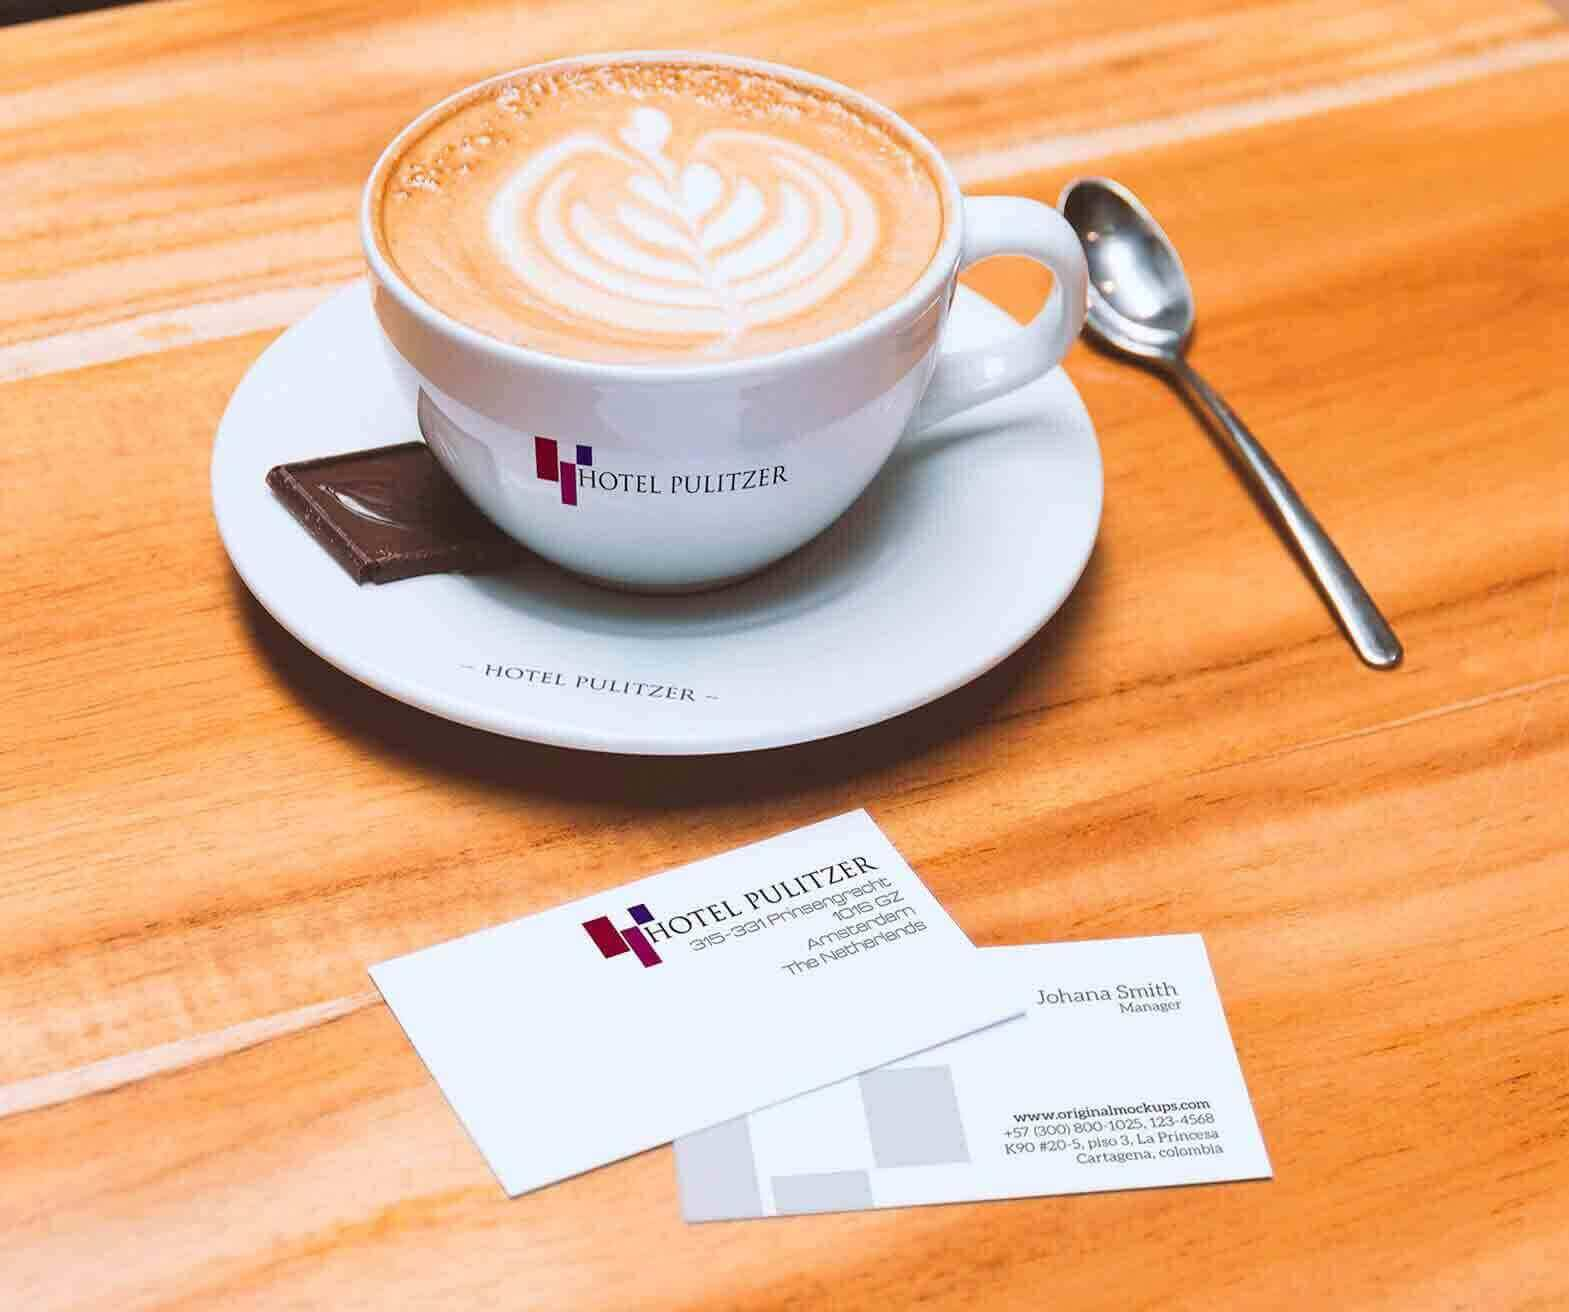 Hotel Pulitzer Business Card & Coffee Cup design